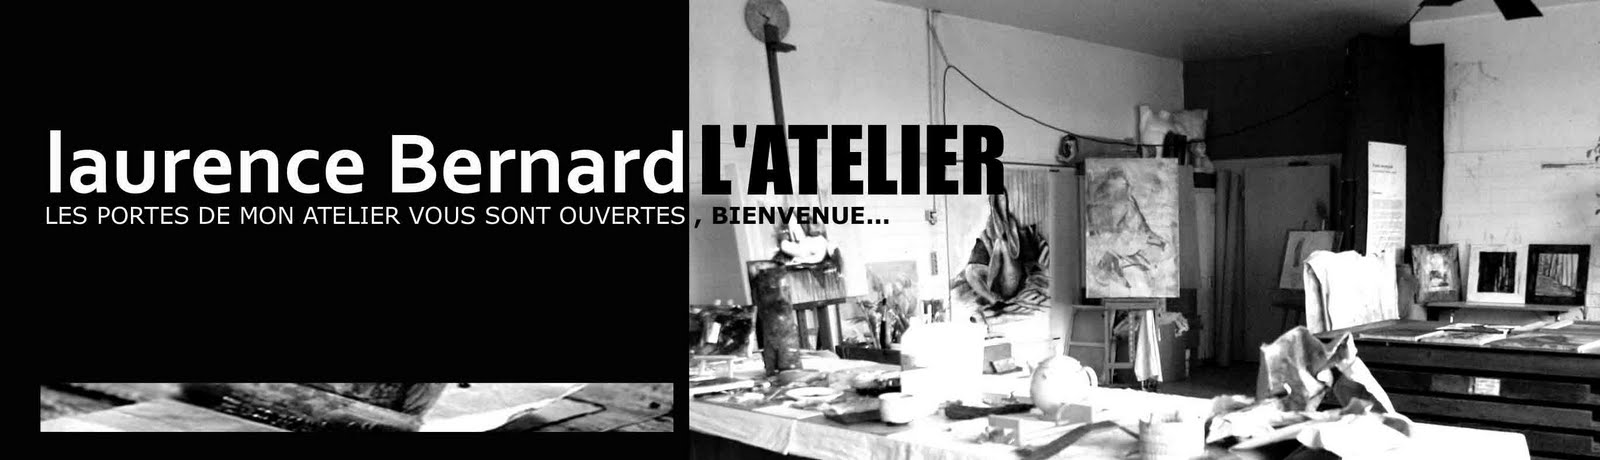 laurence bernard        L&#39;ATELIER